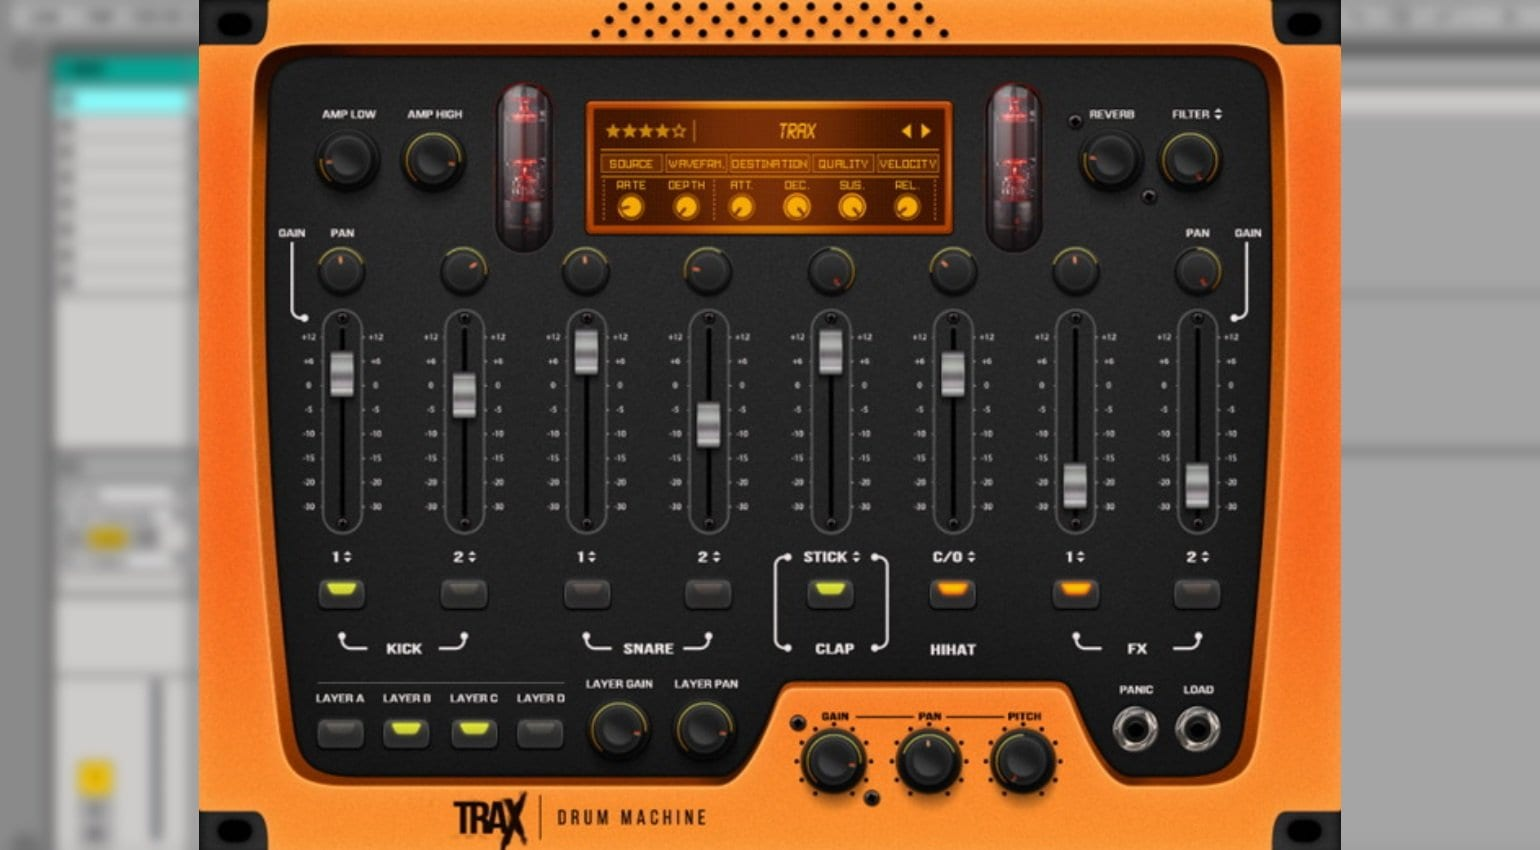 TRAX: A cool VST drum machine for modern beat-driven genres